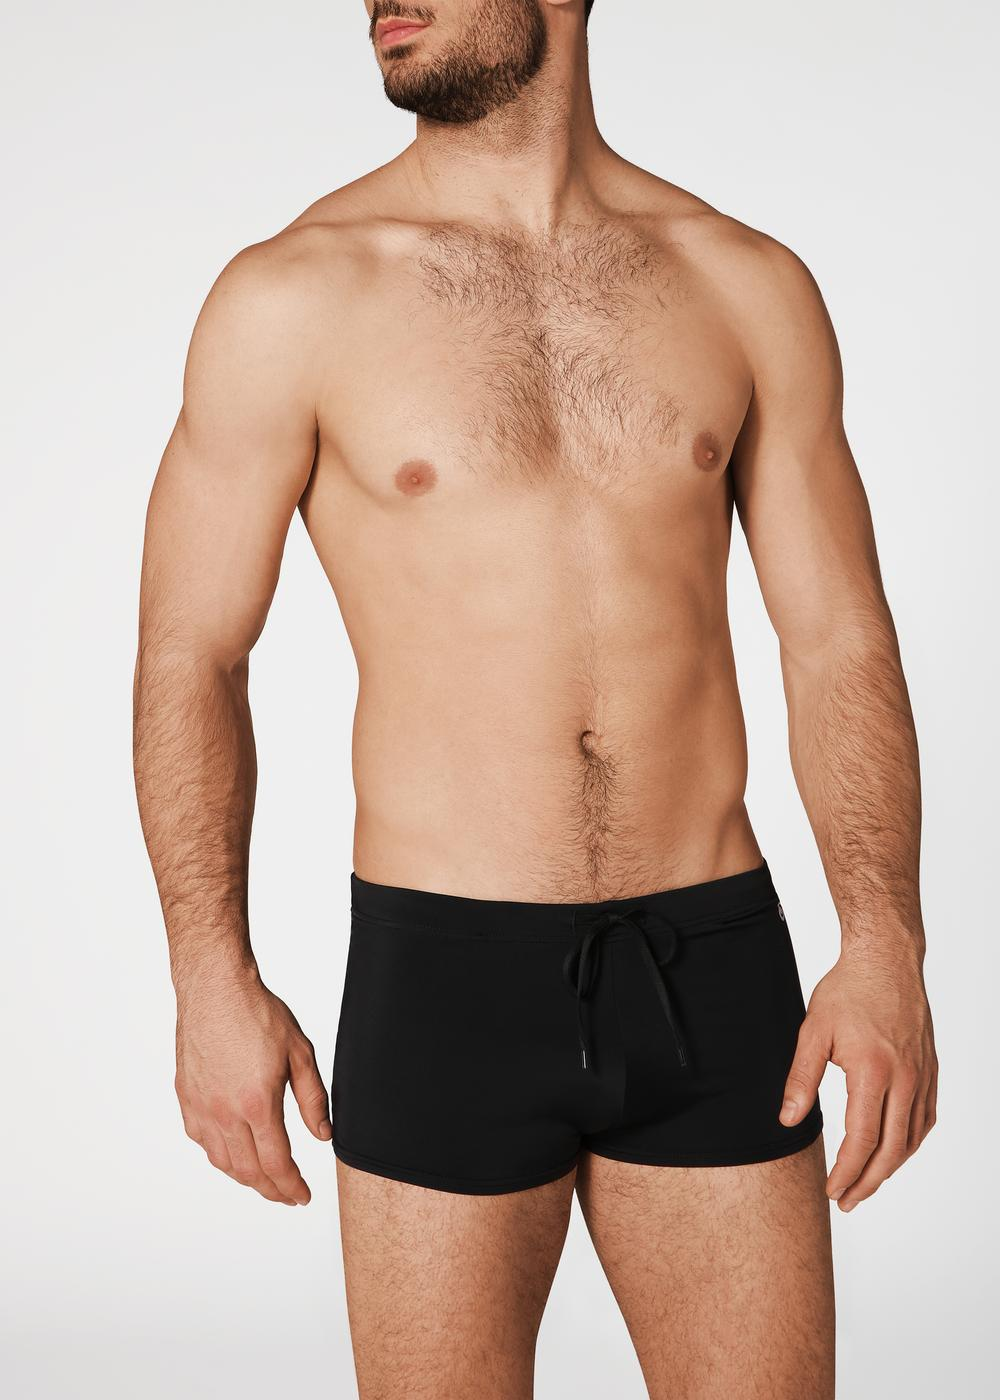 Men's Panama Boxer-Style Swimming Trunks